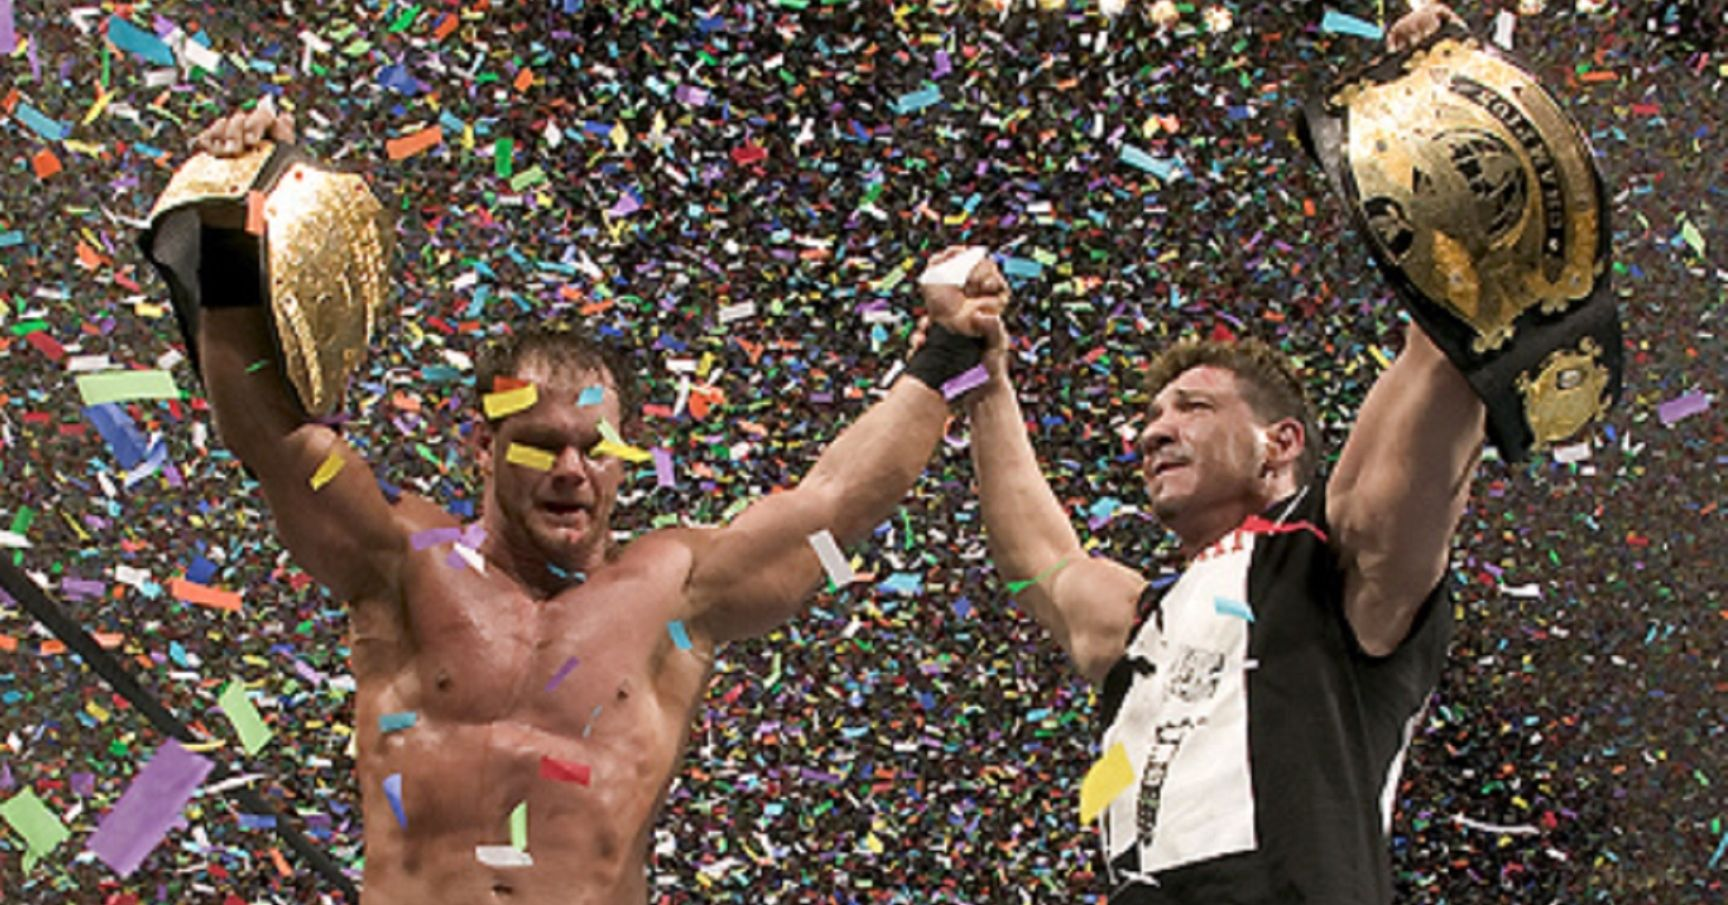 15 Of The Most Emotional Pictures From Live WWE Events